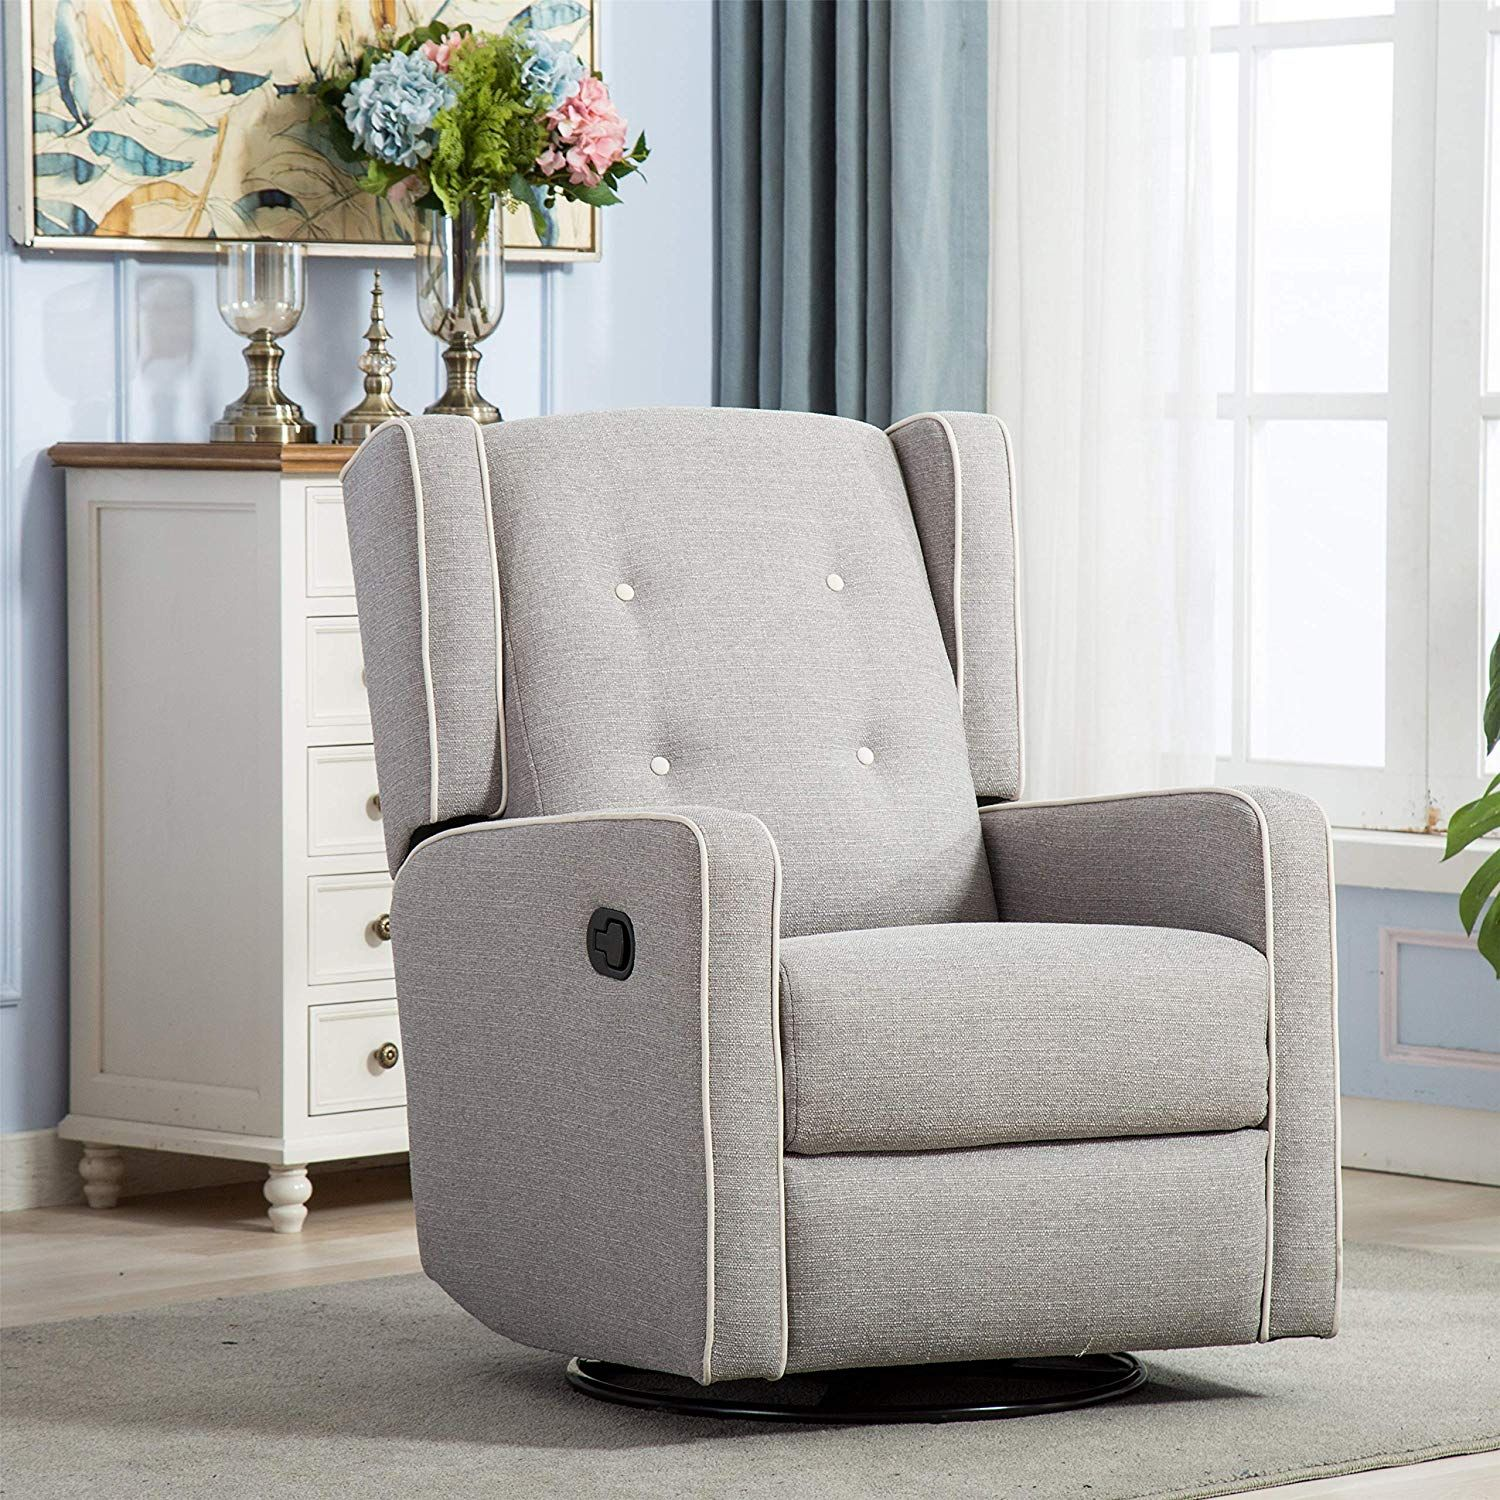 CANMOV Swivel Rocker Fabric Manual Recliner Chair for